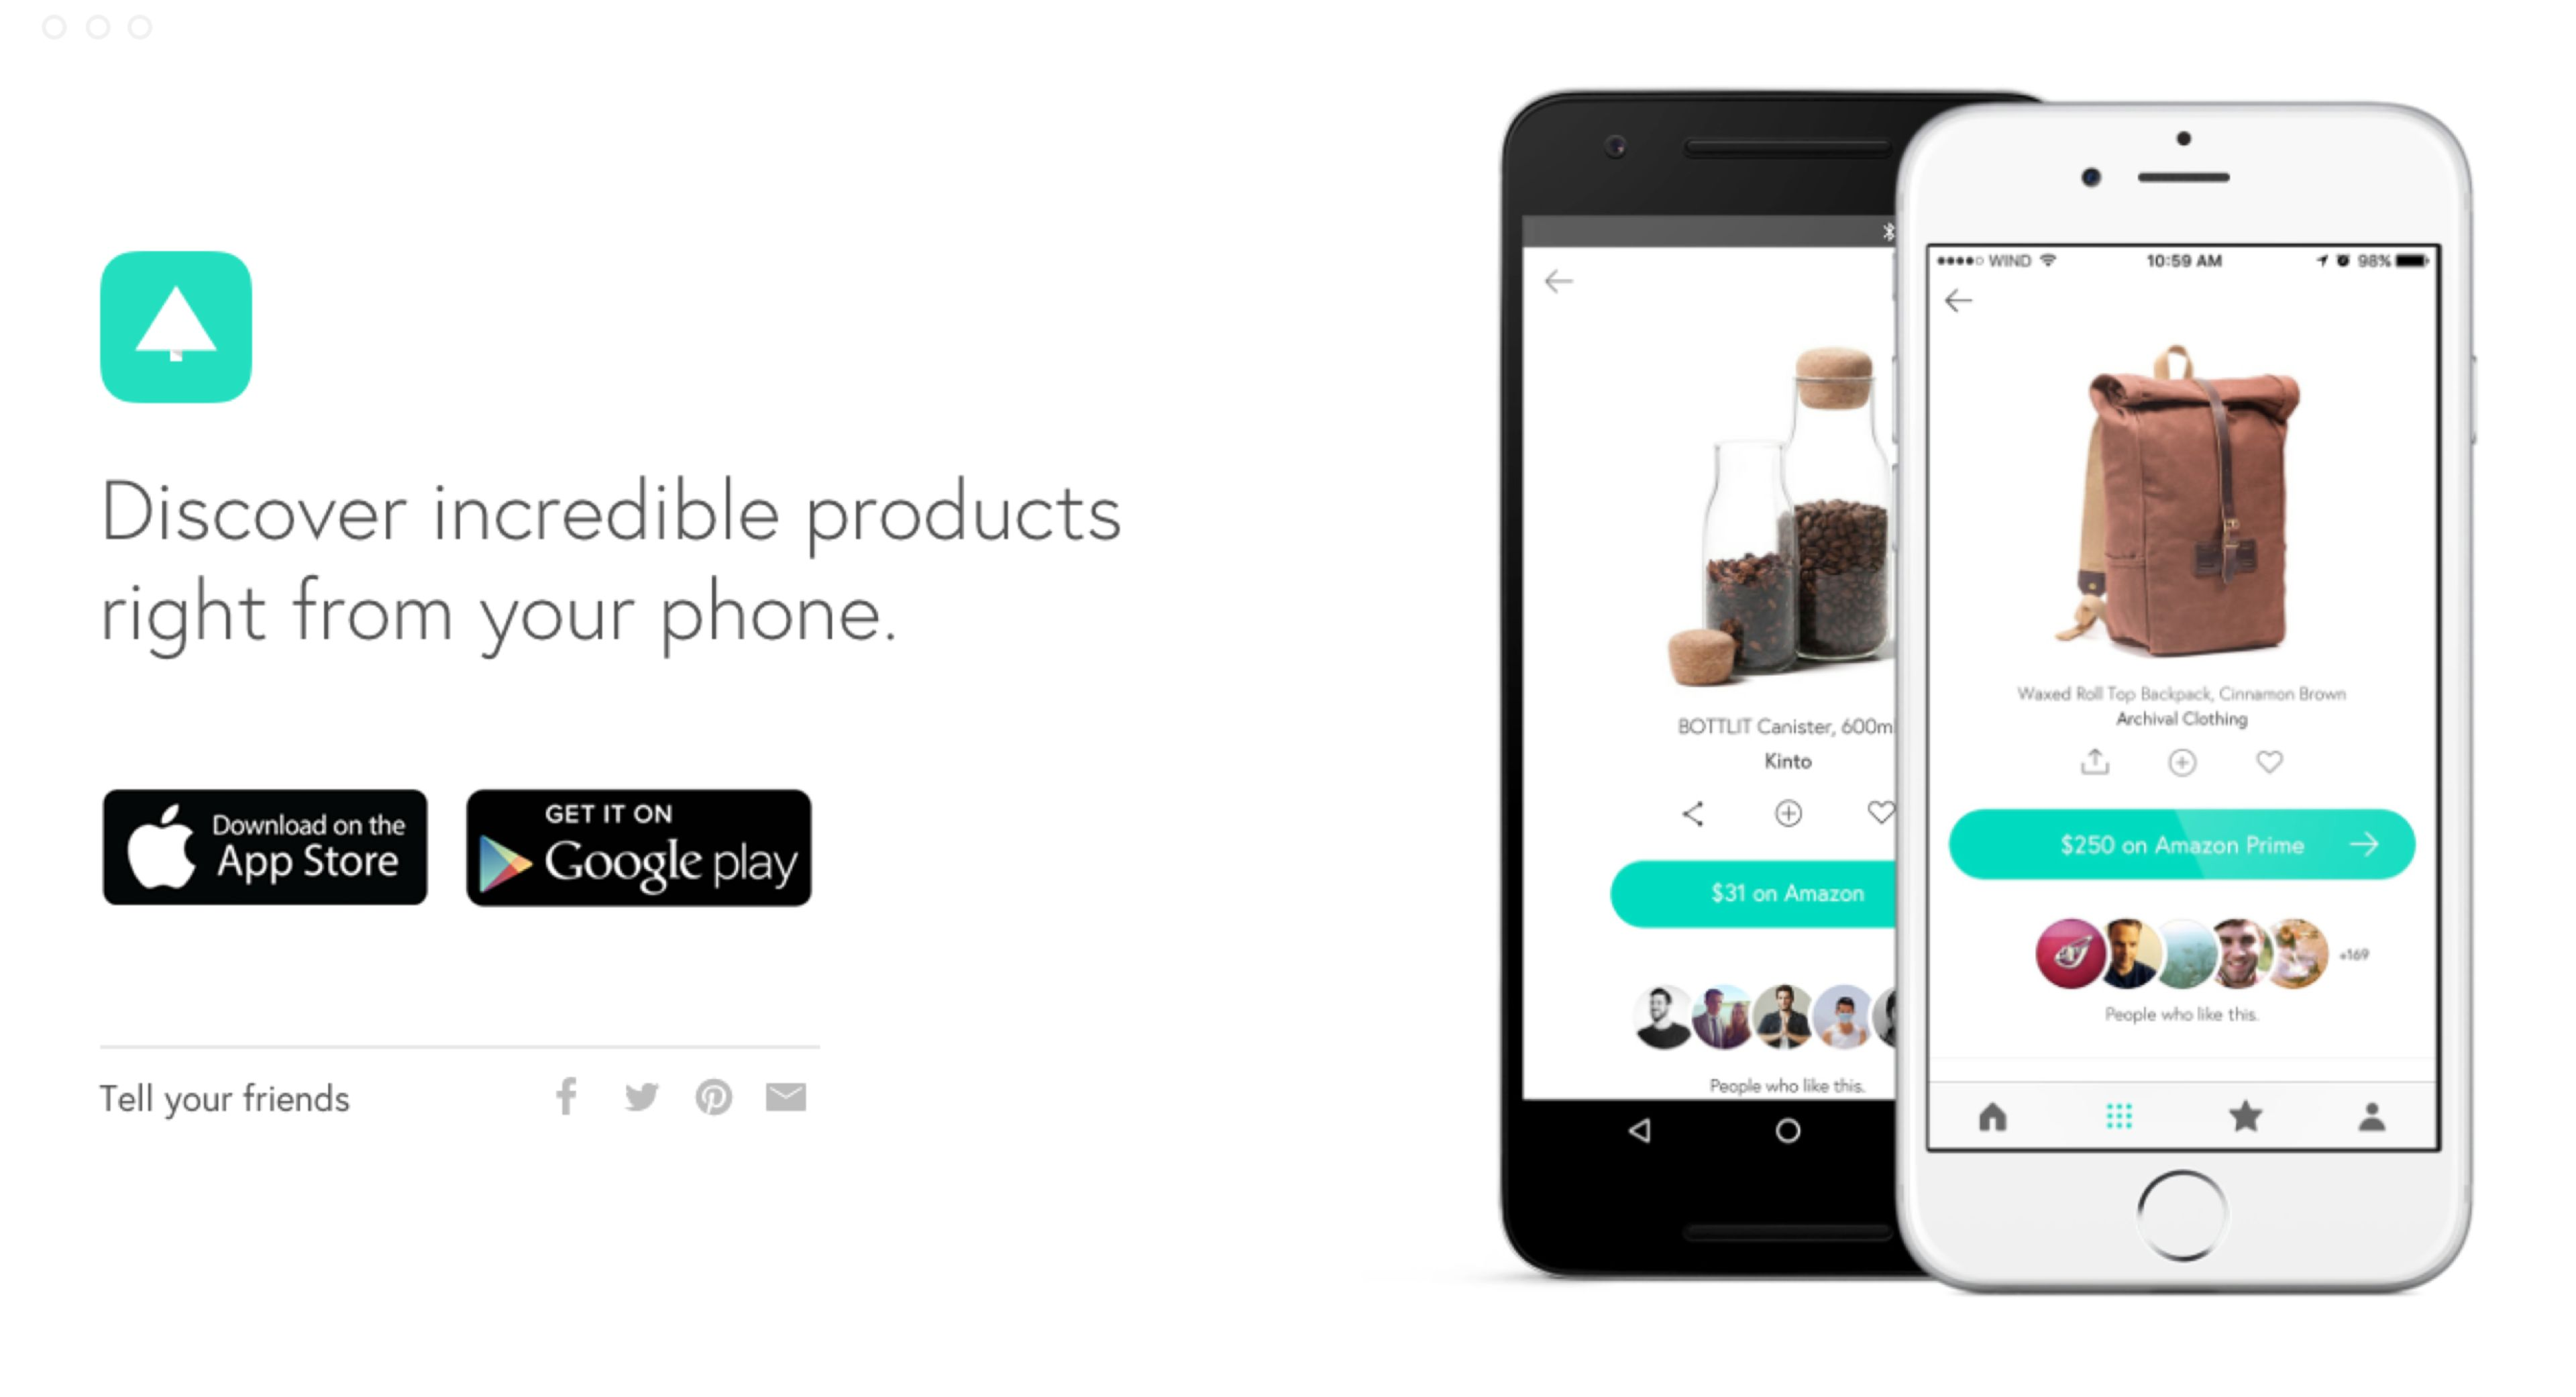 A callout to download the Canopy app in the Android + iOS app stores. There's a brand tagline with some images of iPhones open on the Canopy product page.